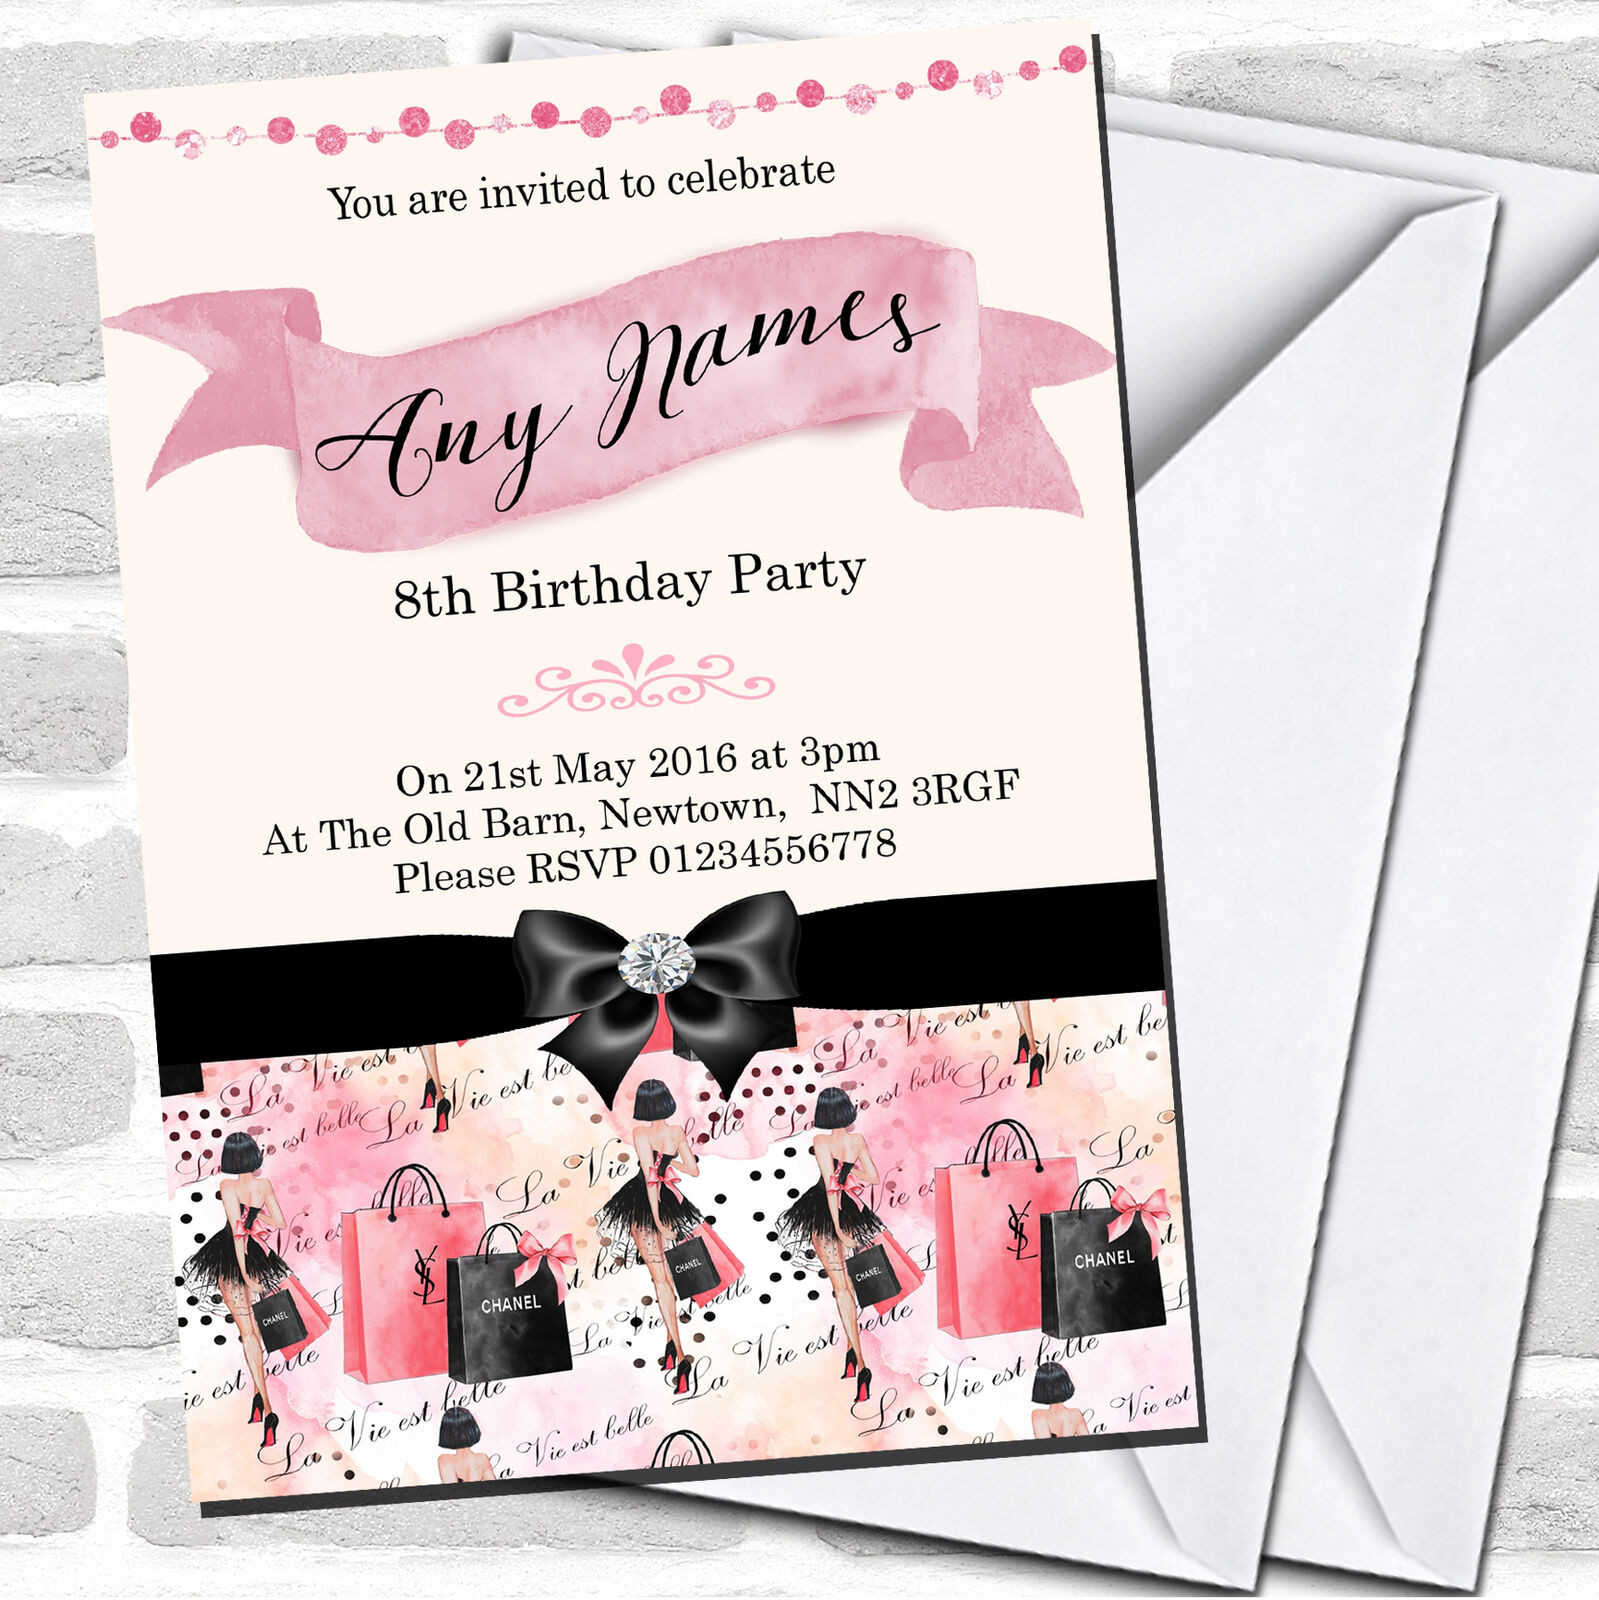 Rosa Invitations Girls Fashion Show Children S Birthday Party